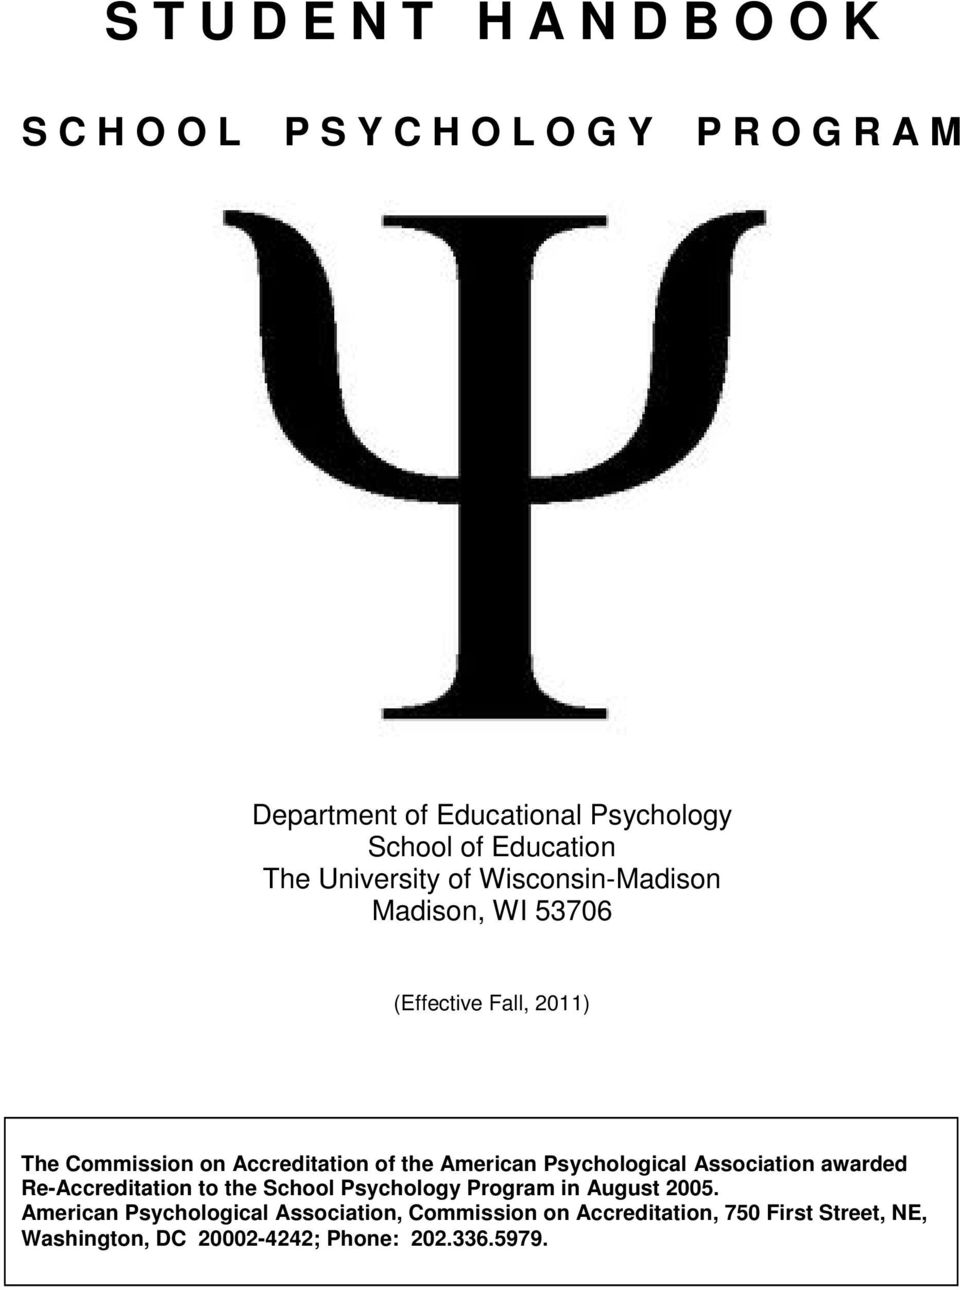 the American Psychological Association awarded Re-Accreditation to the School Psychology Program in August 2005.